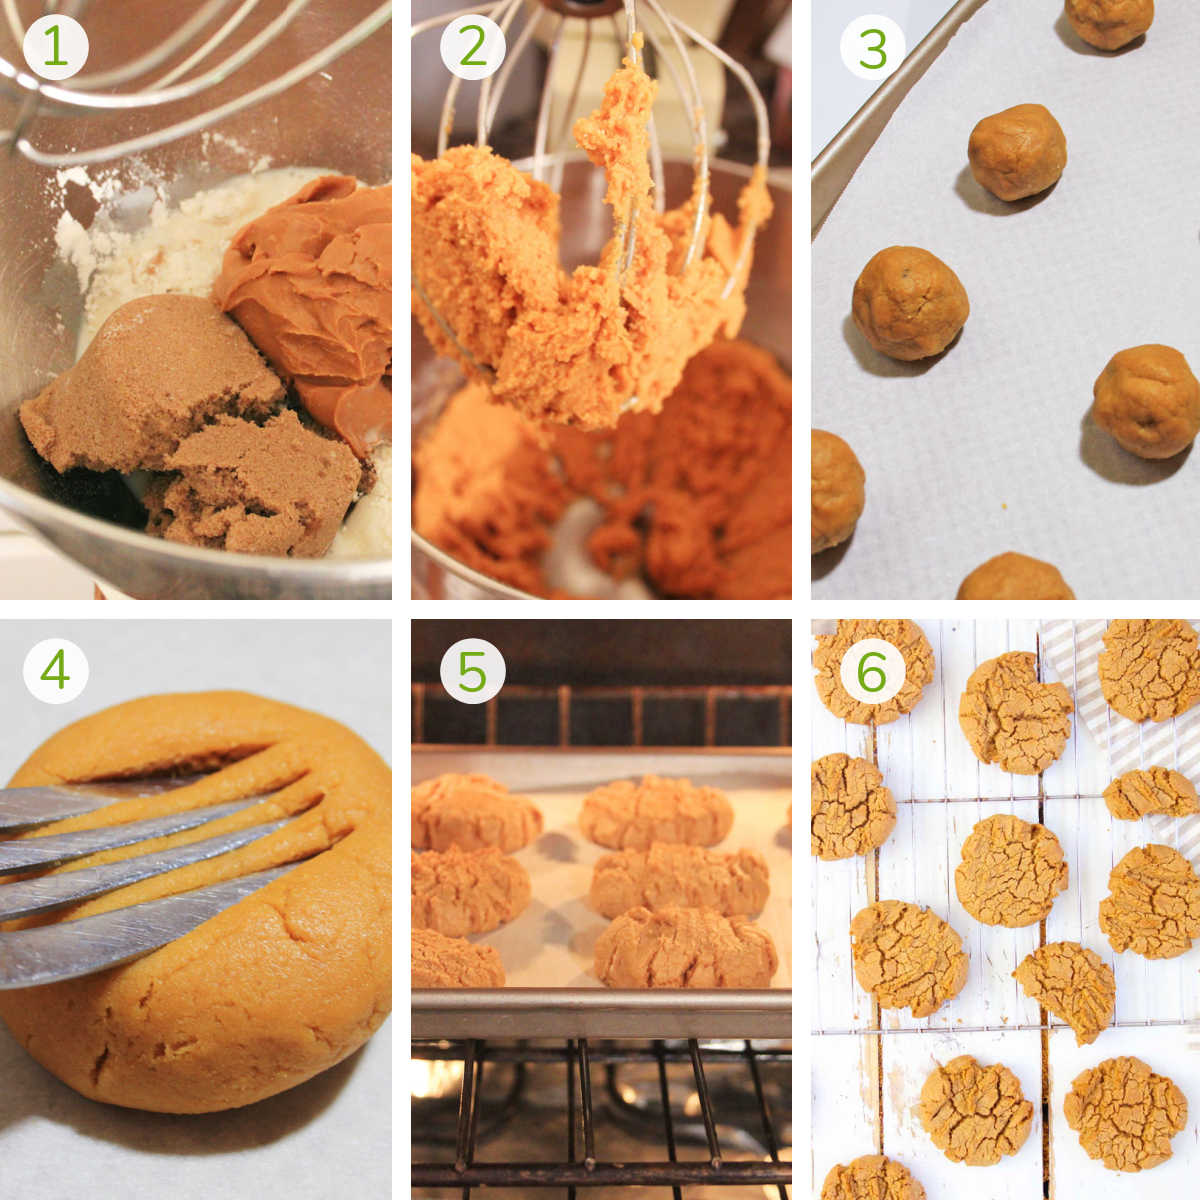 six process photos showing mixing together the ingredients, forming cookie balls, baking and cooling them.